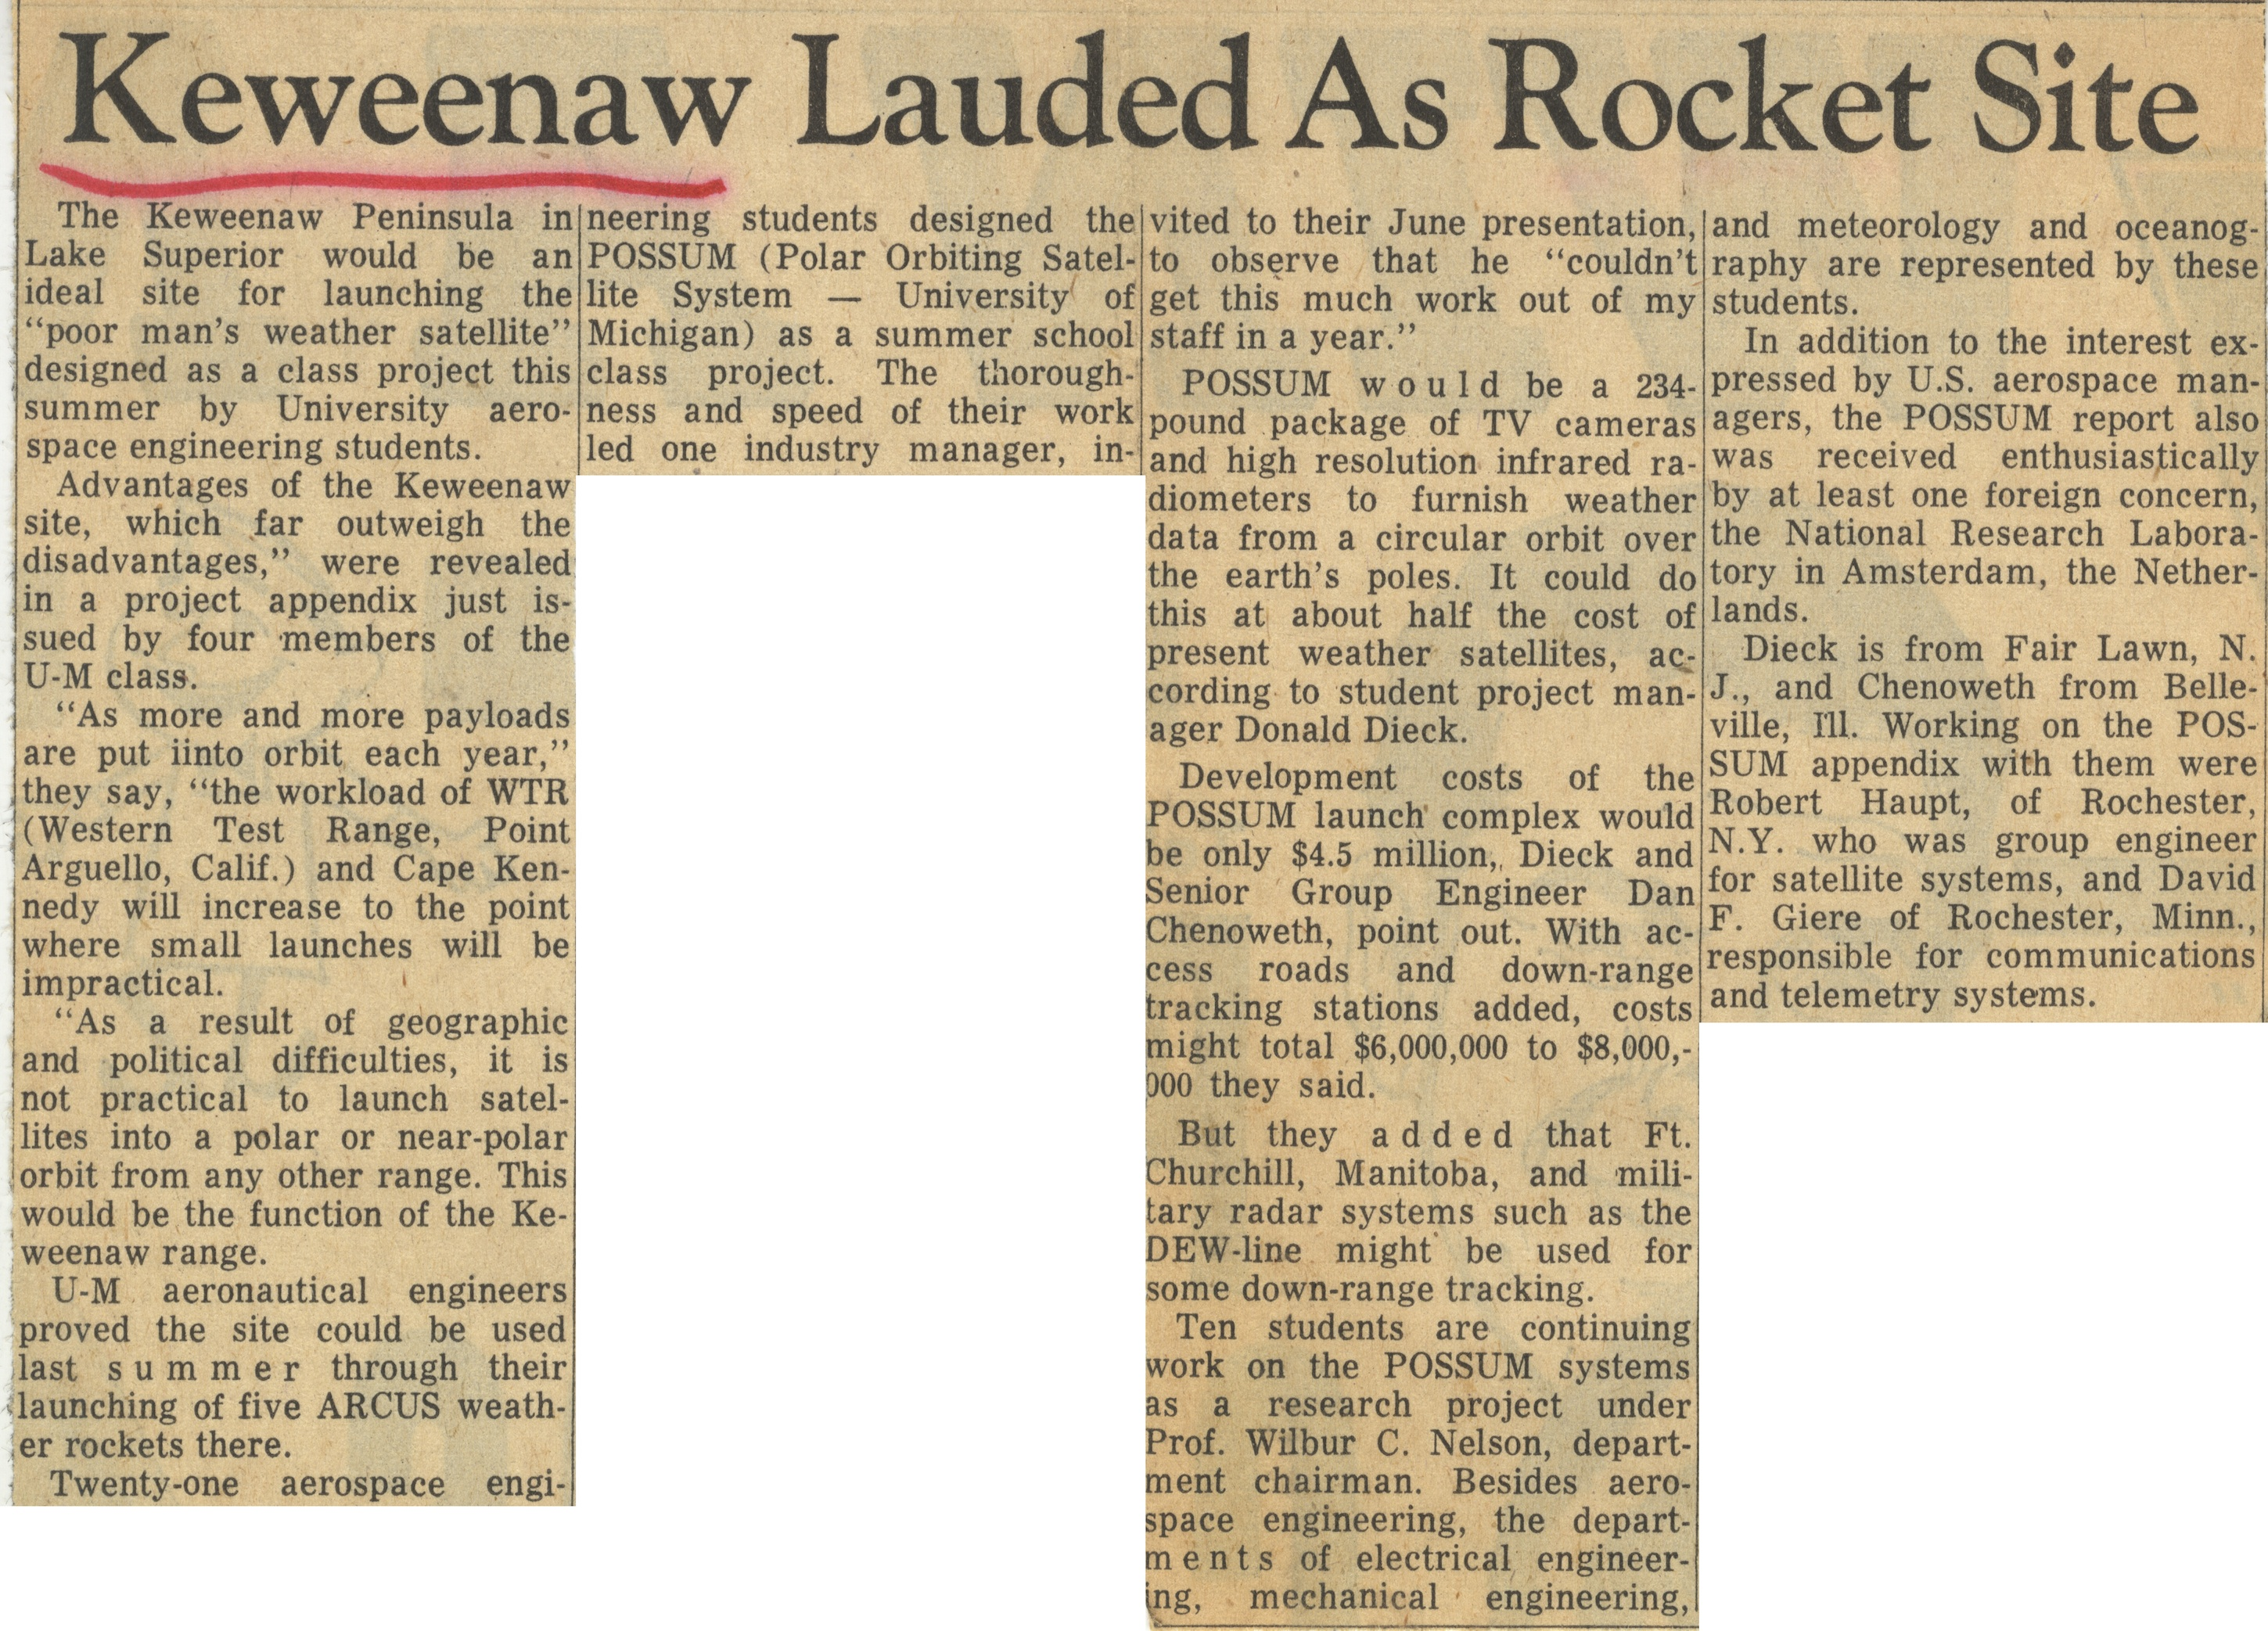 Keweenaw Lauded As Rocket Site image